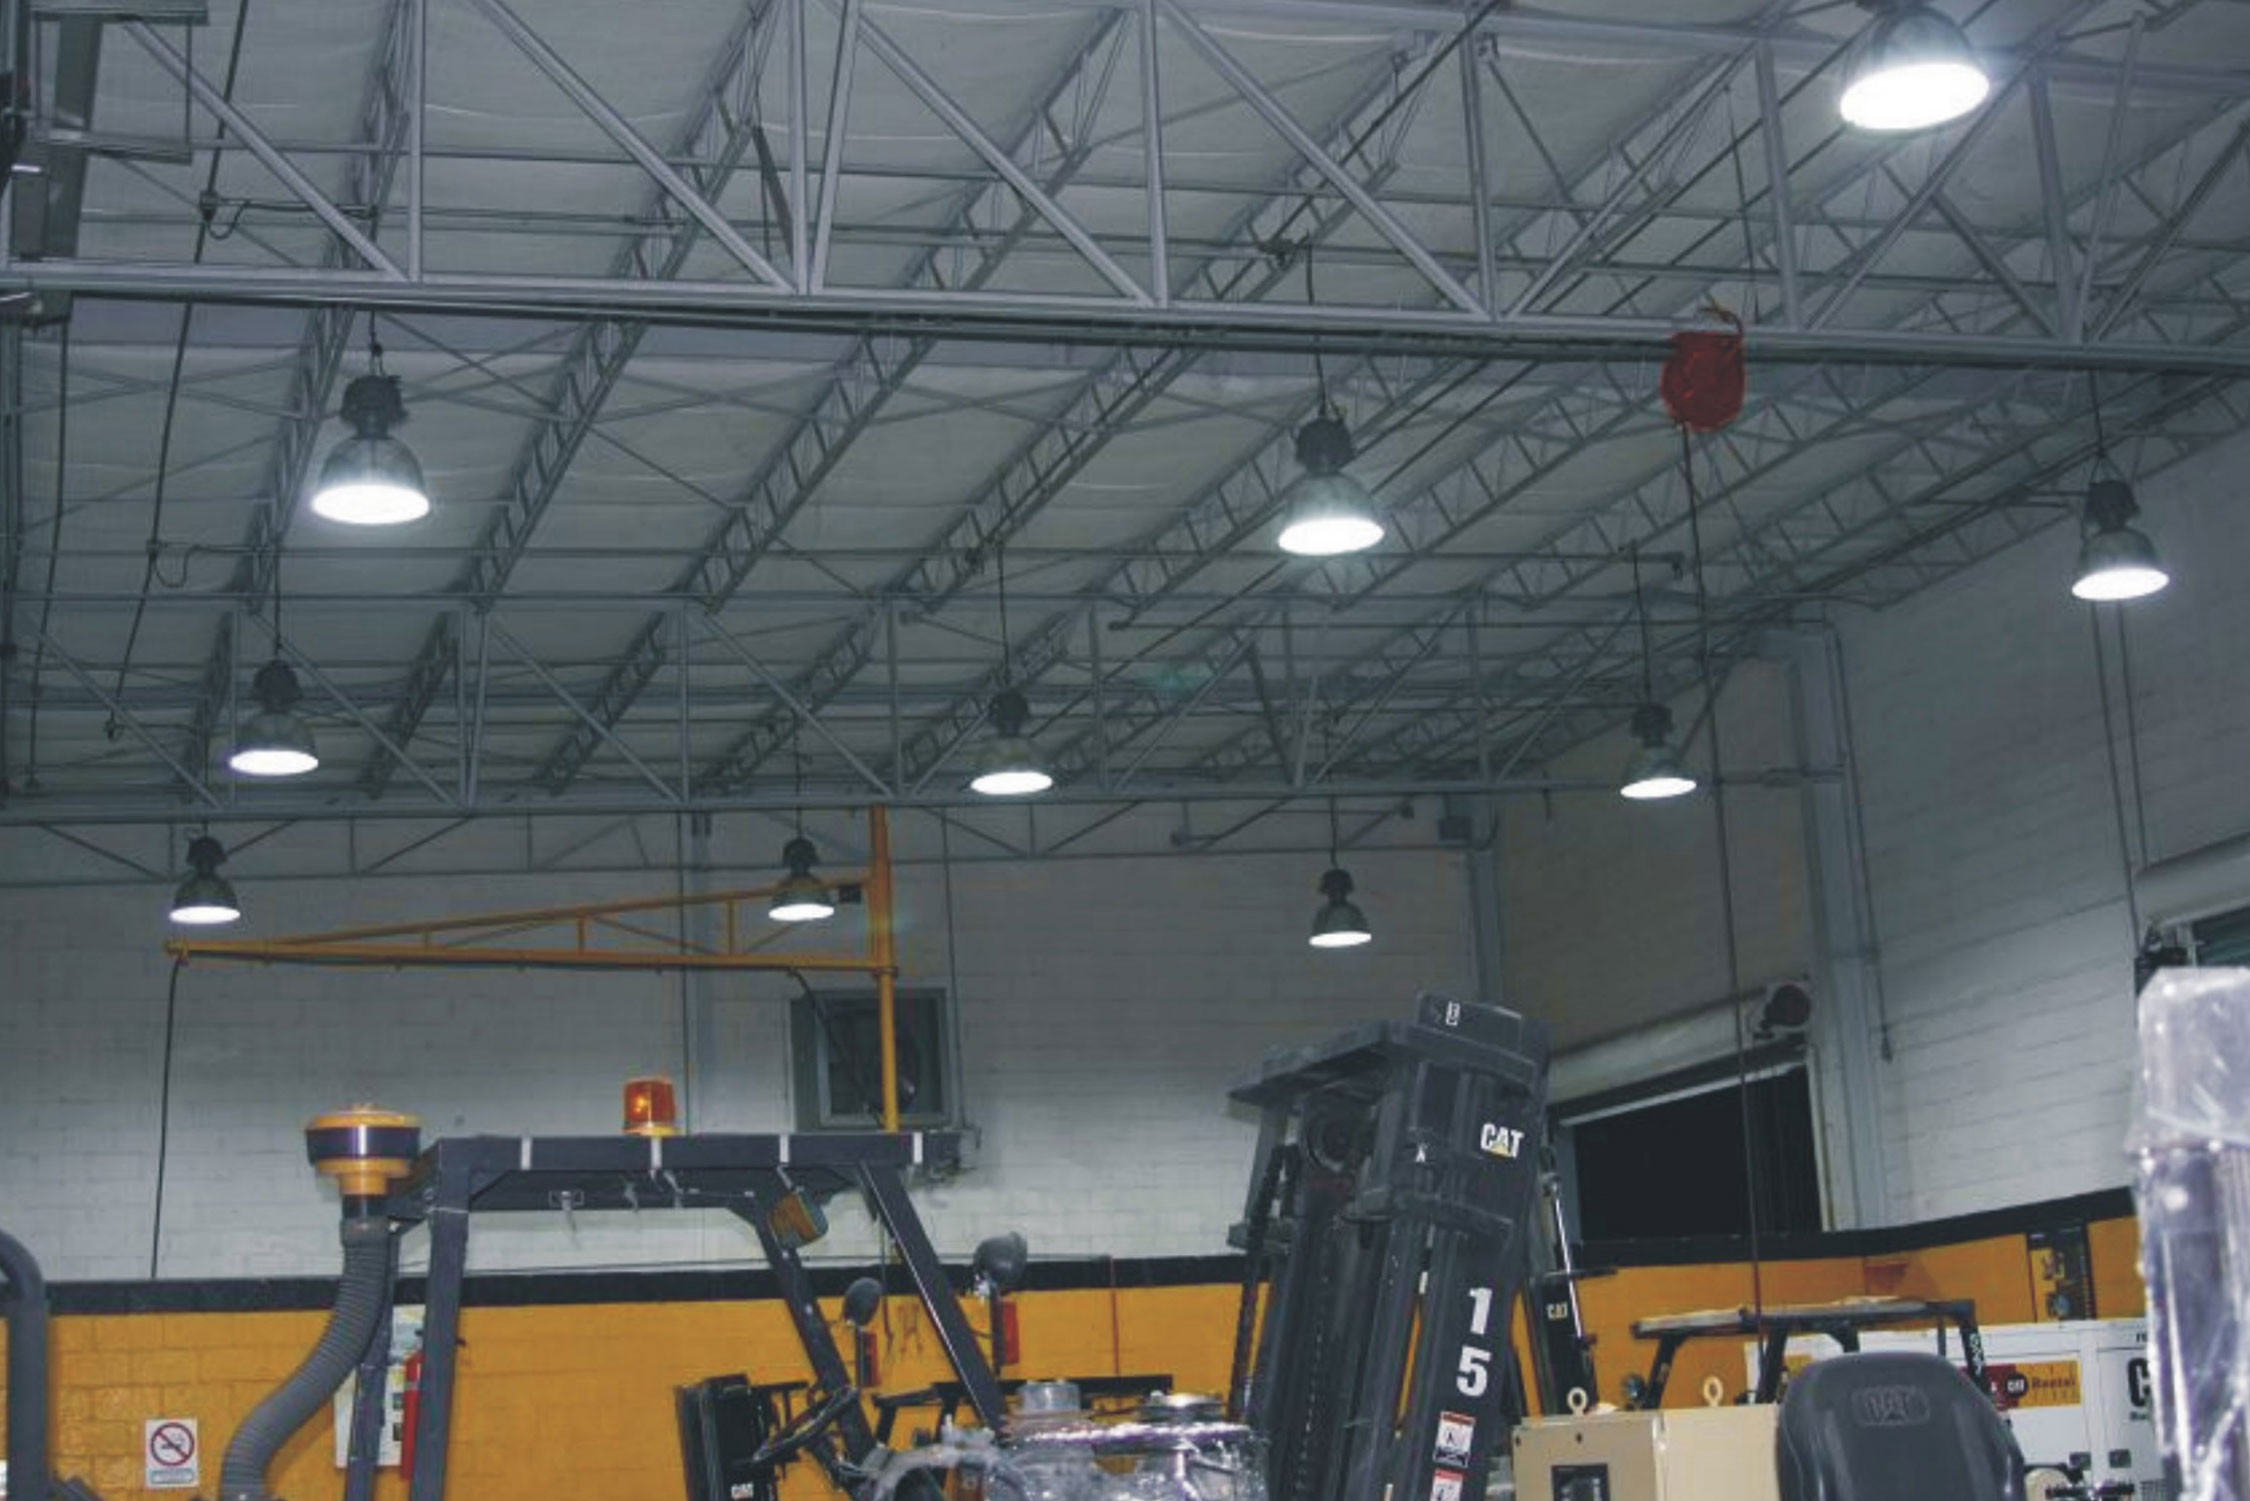 retrofitting warehouse lights to LED high bay